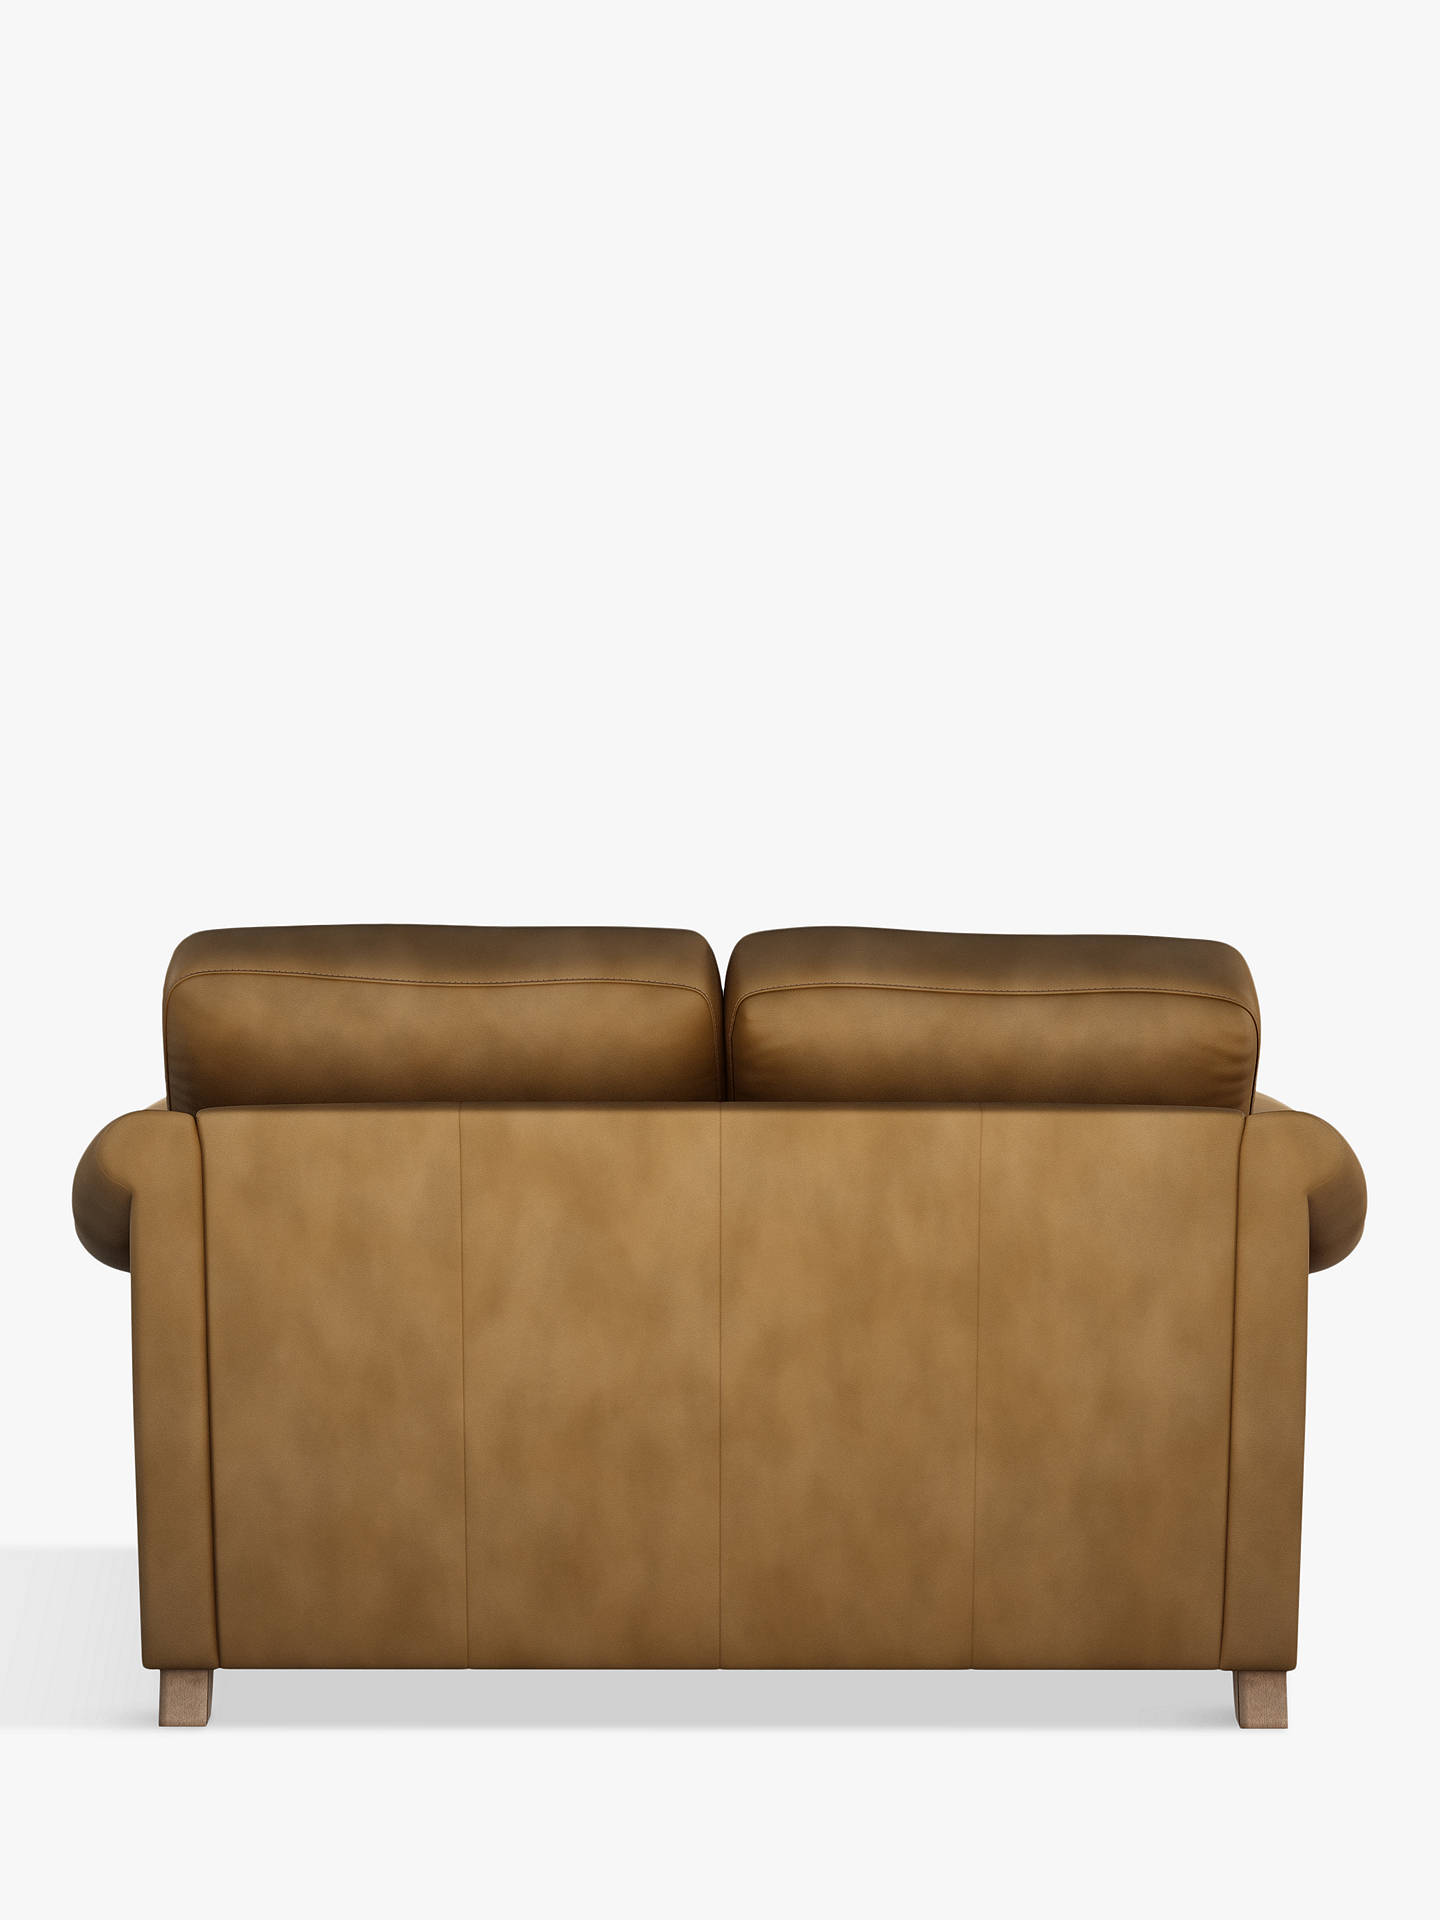 Buy John Lewis & Partners Camber Small 2 Seater Leather Sofa, Dark Leg, Demetra Light Tan Online at johnlewis.com